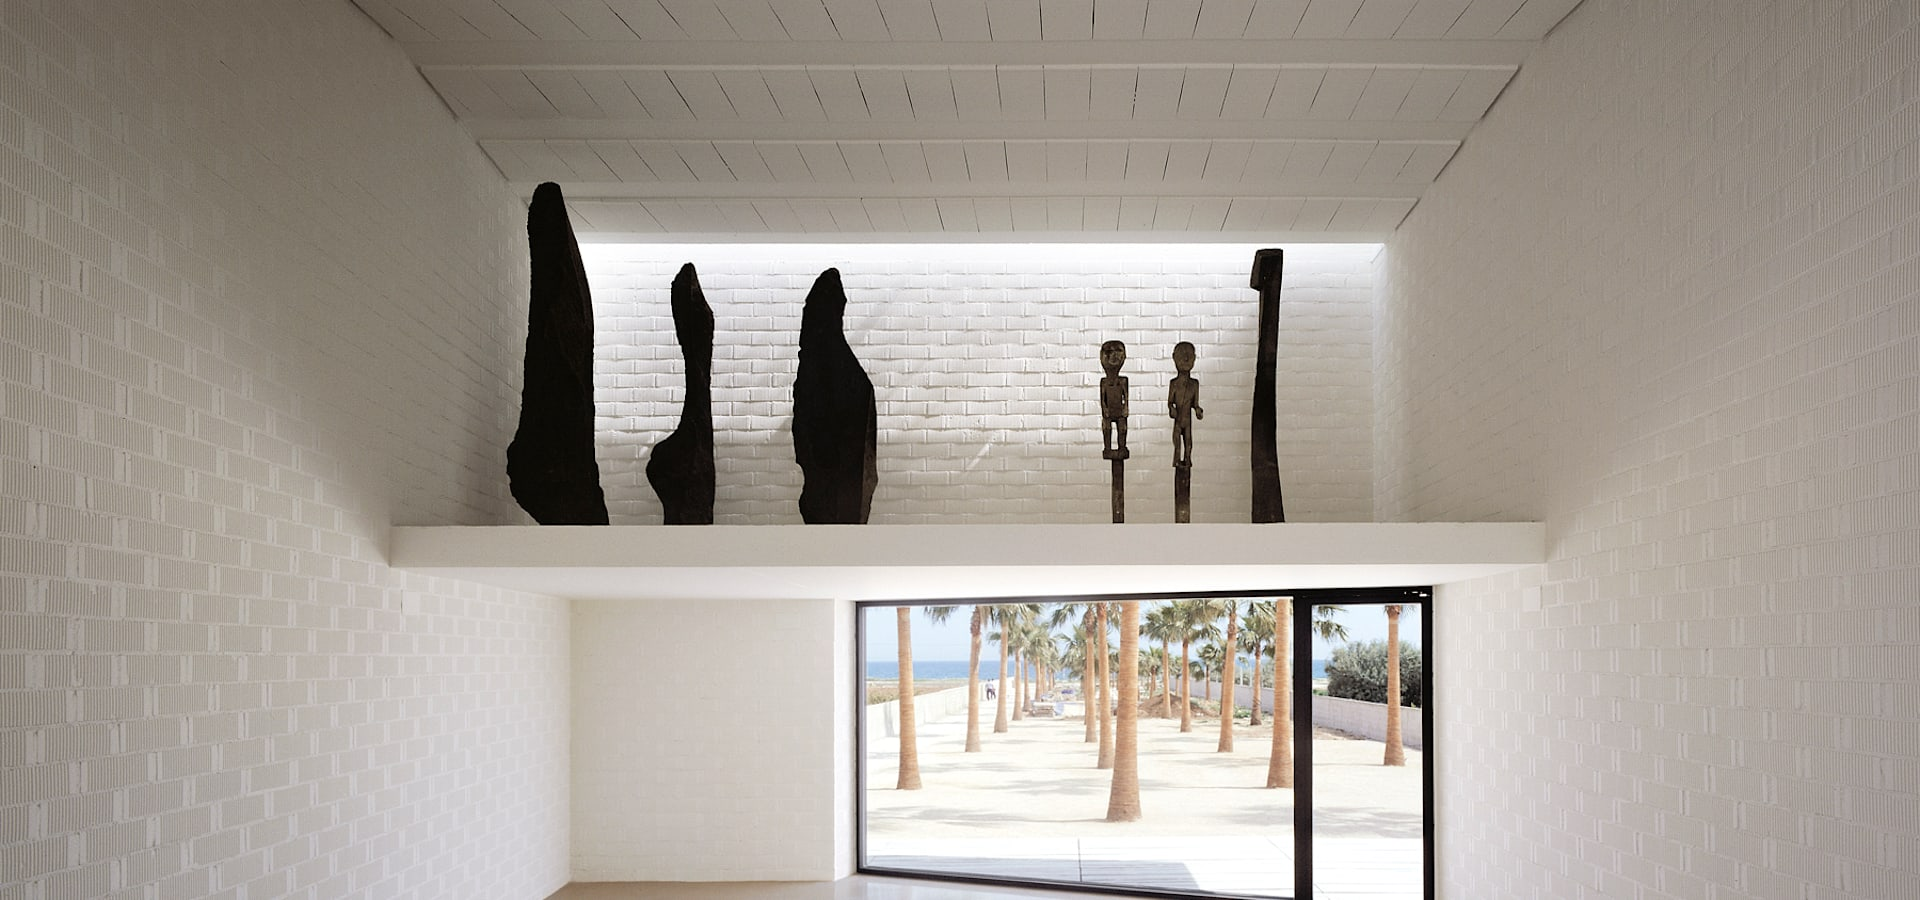 OFFICE OF ARCHITECTURE IN BARCELONA SLP (OAB)